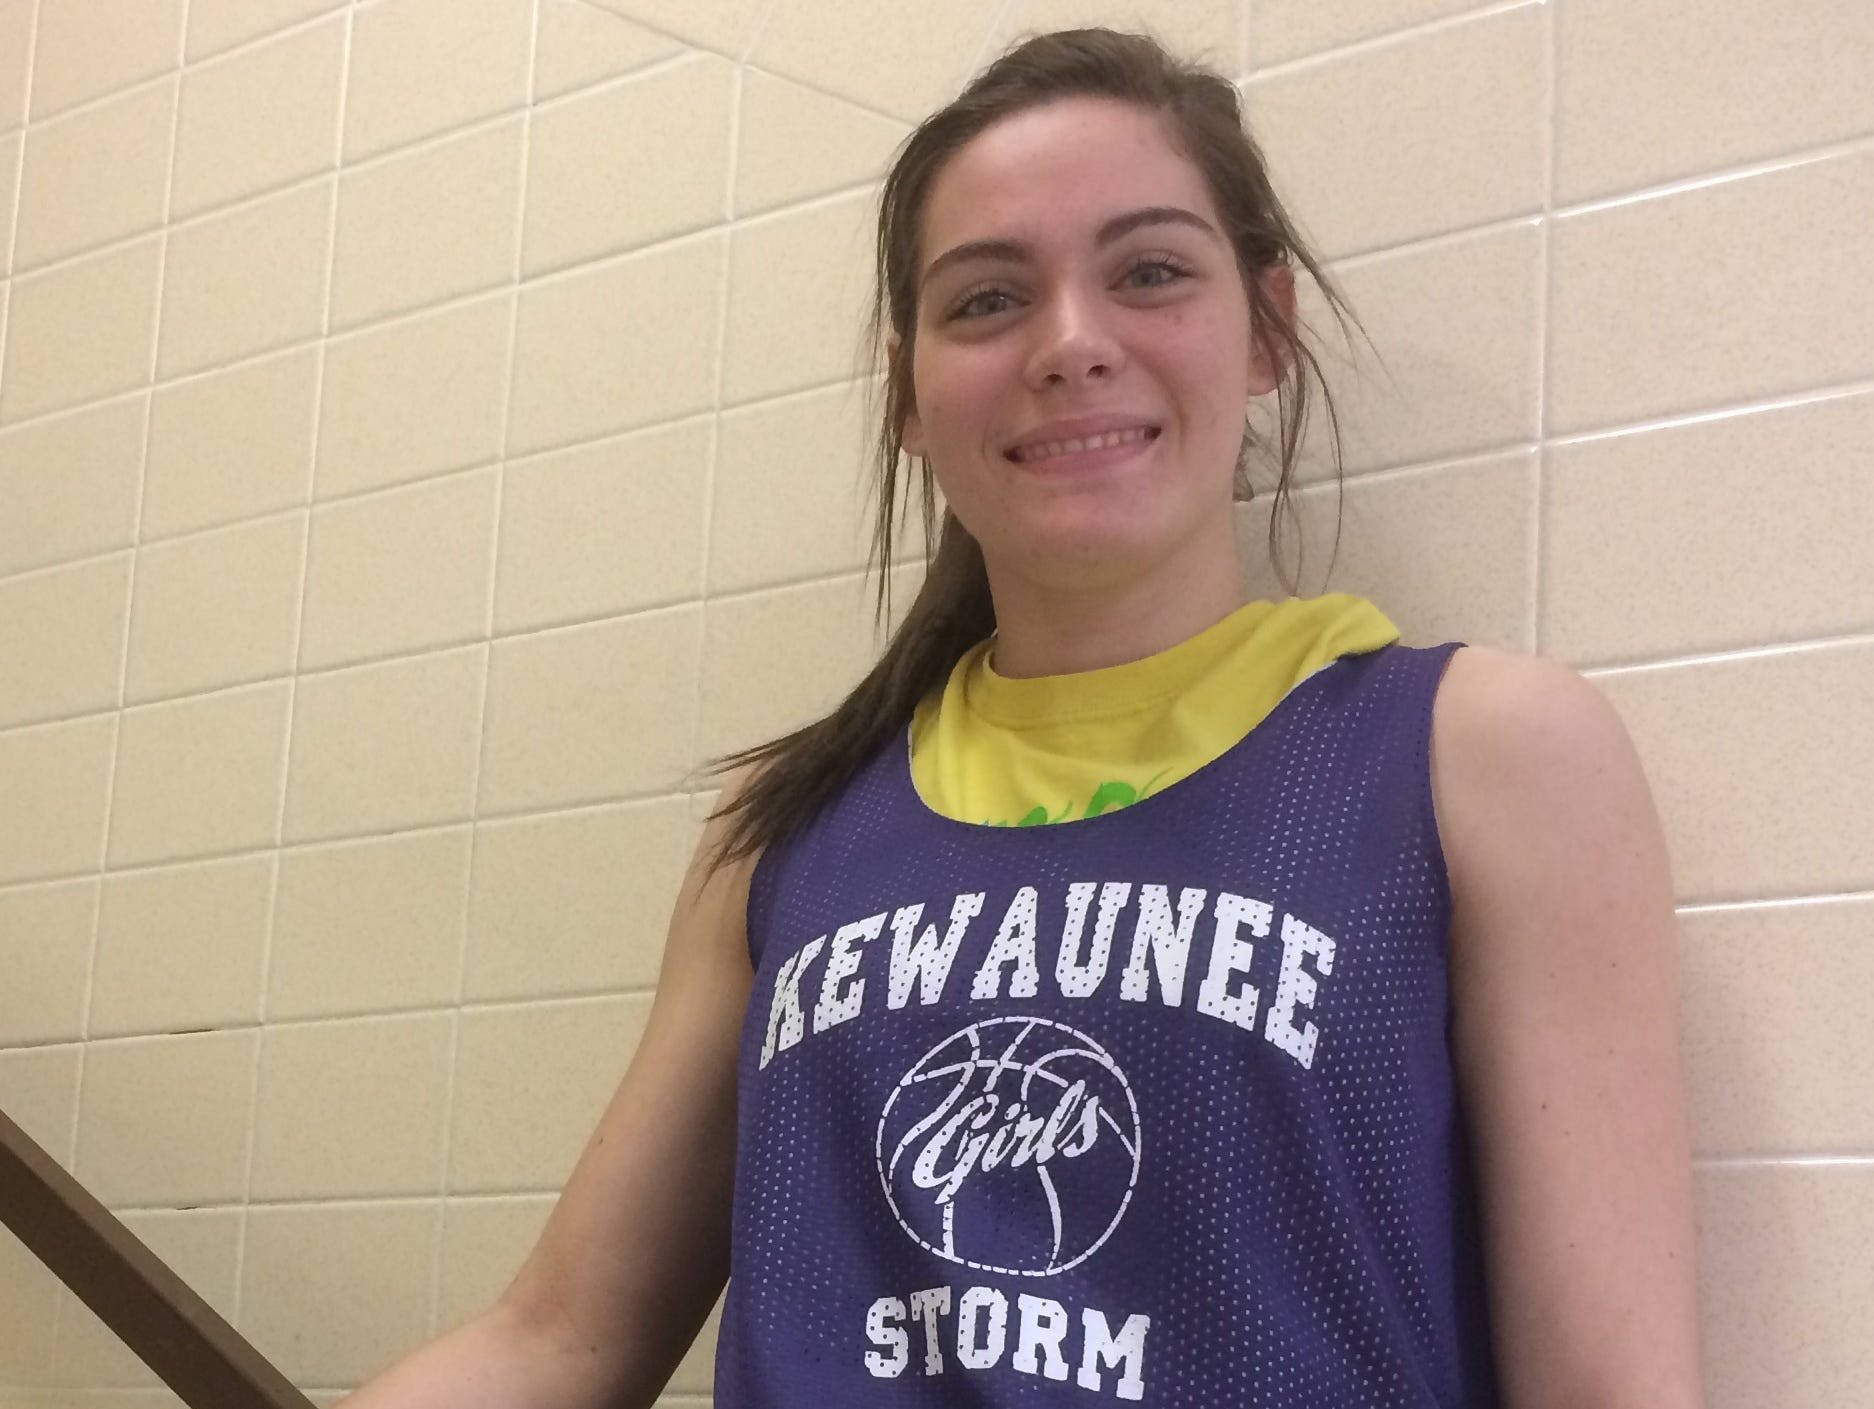 Kewaunee senior Brooke Geier is averaging 20.6 points, 7.4 rebounds, 2.9 assists and 3.9 steals per game this season. She holds her school's all-time scoring record in addition to breaking a single-season record for points scored.